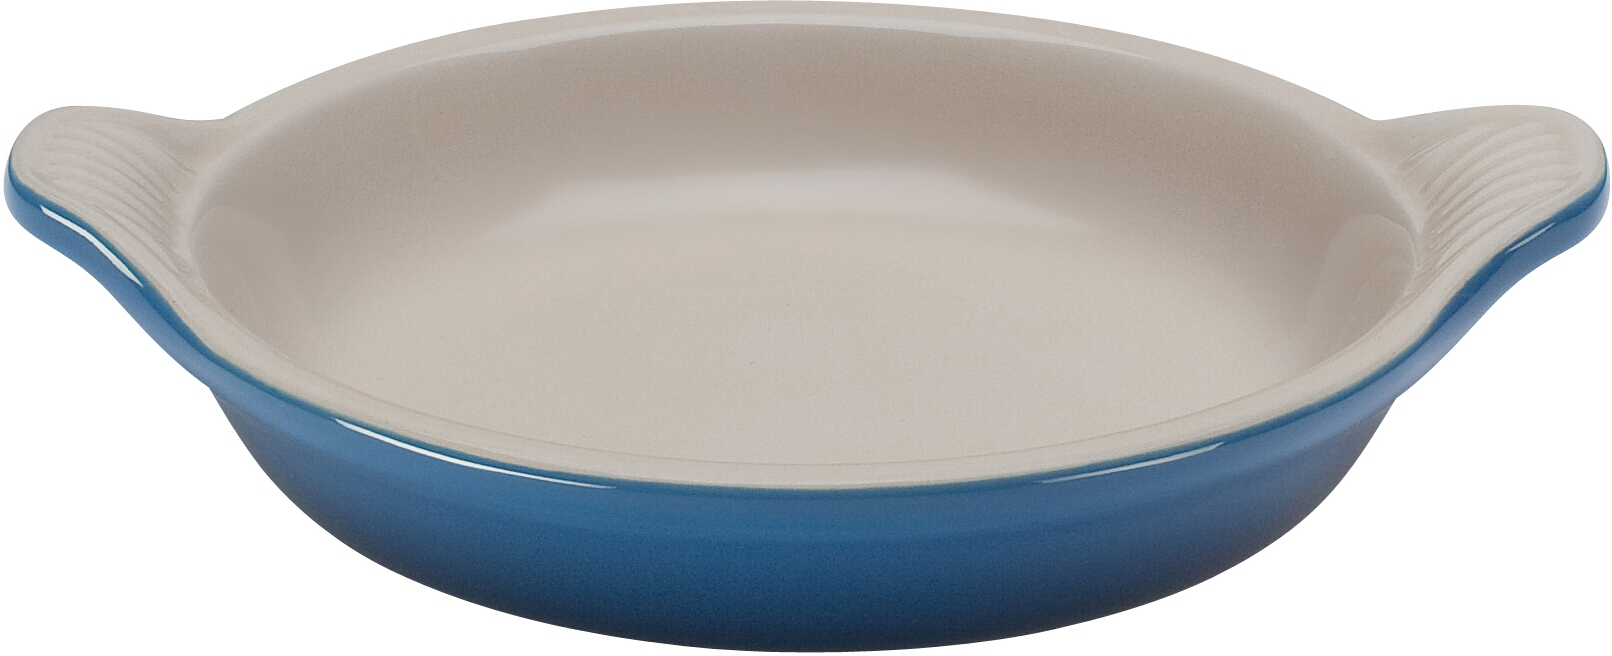 Le Creuset Marseille Blue Stoneware Creme Brulee Dish, 7 Ounce